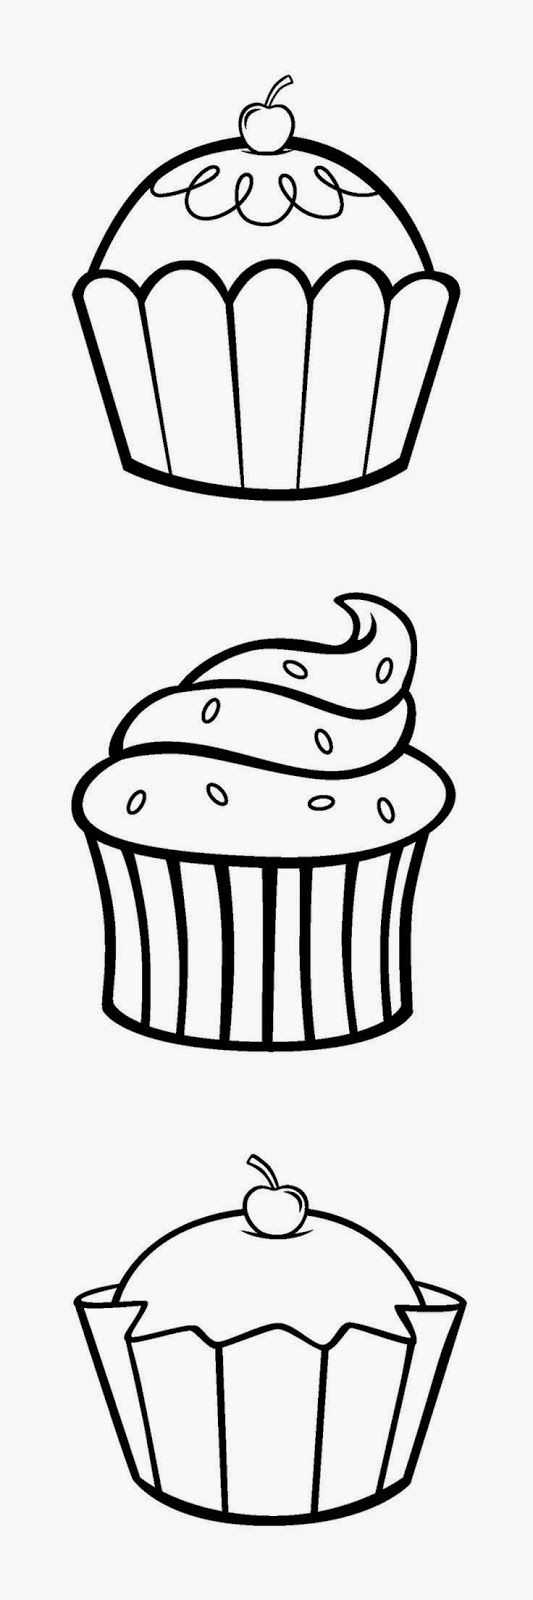 Hello Kitty Cupcake Coloring Pages - Coloring Home